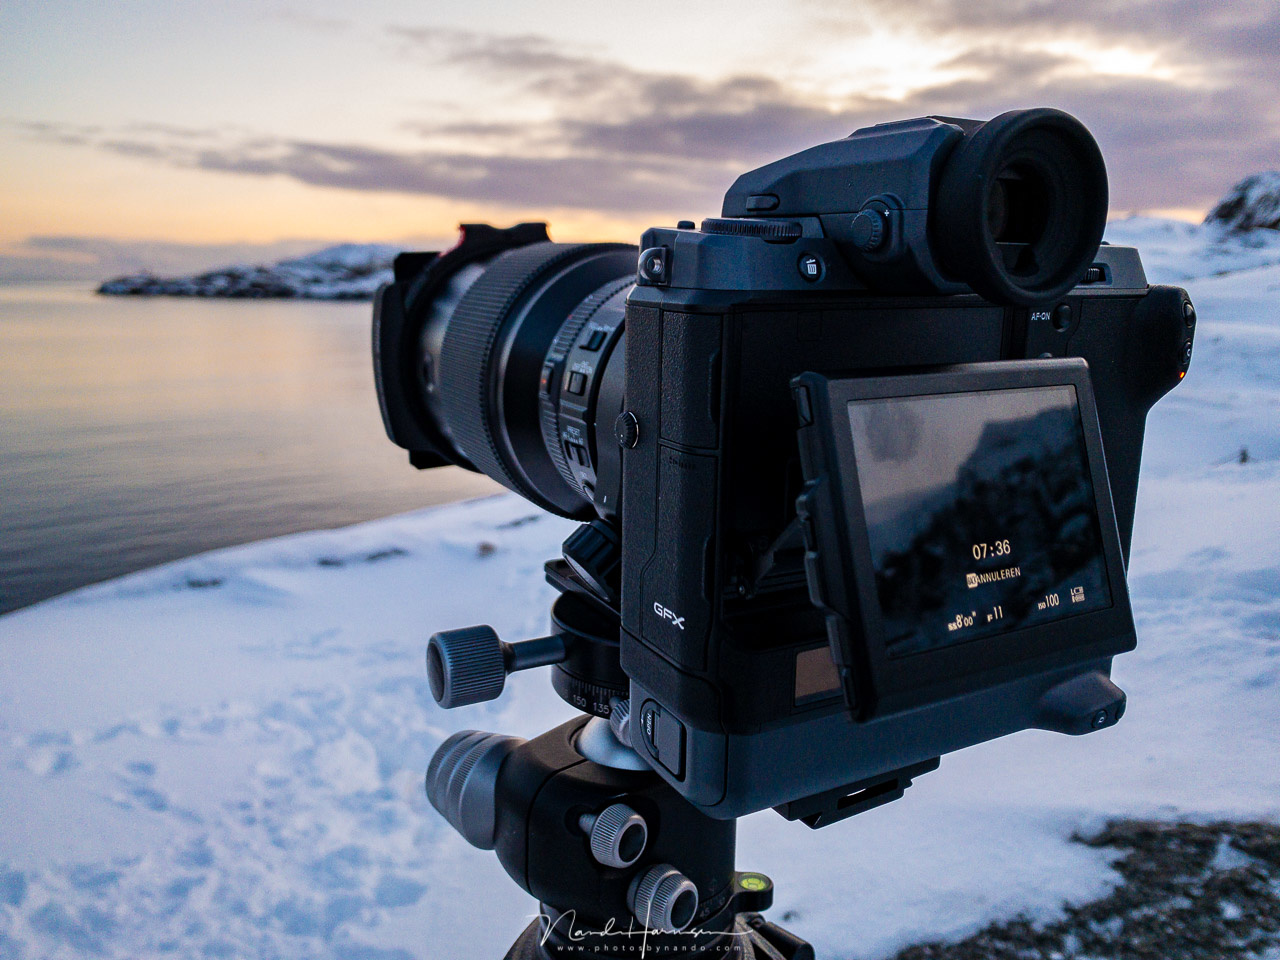 A behind the scene shot, Shooting with the Fujifilm GFX100 and Haida filters turned out to be lots of fun.